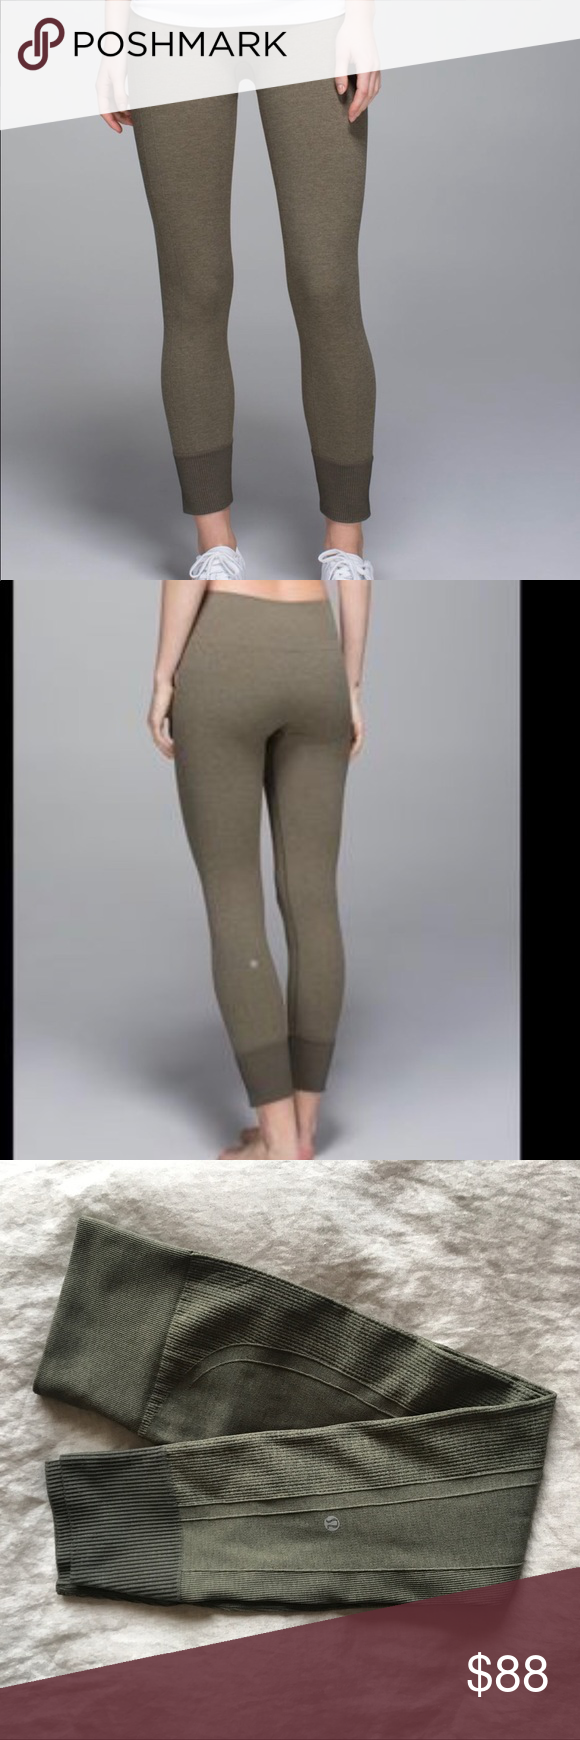 4f72972579c7ff Lululemon ebb to street pant size 4 in olive NWOT - brand new never been  worn